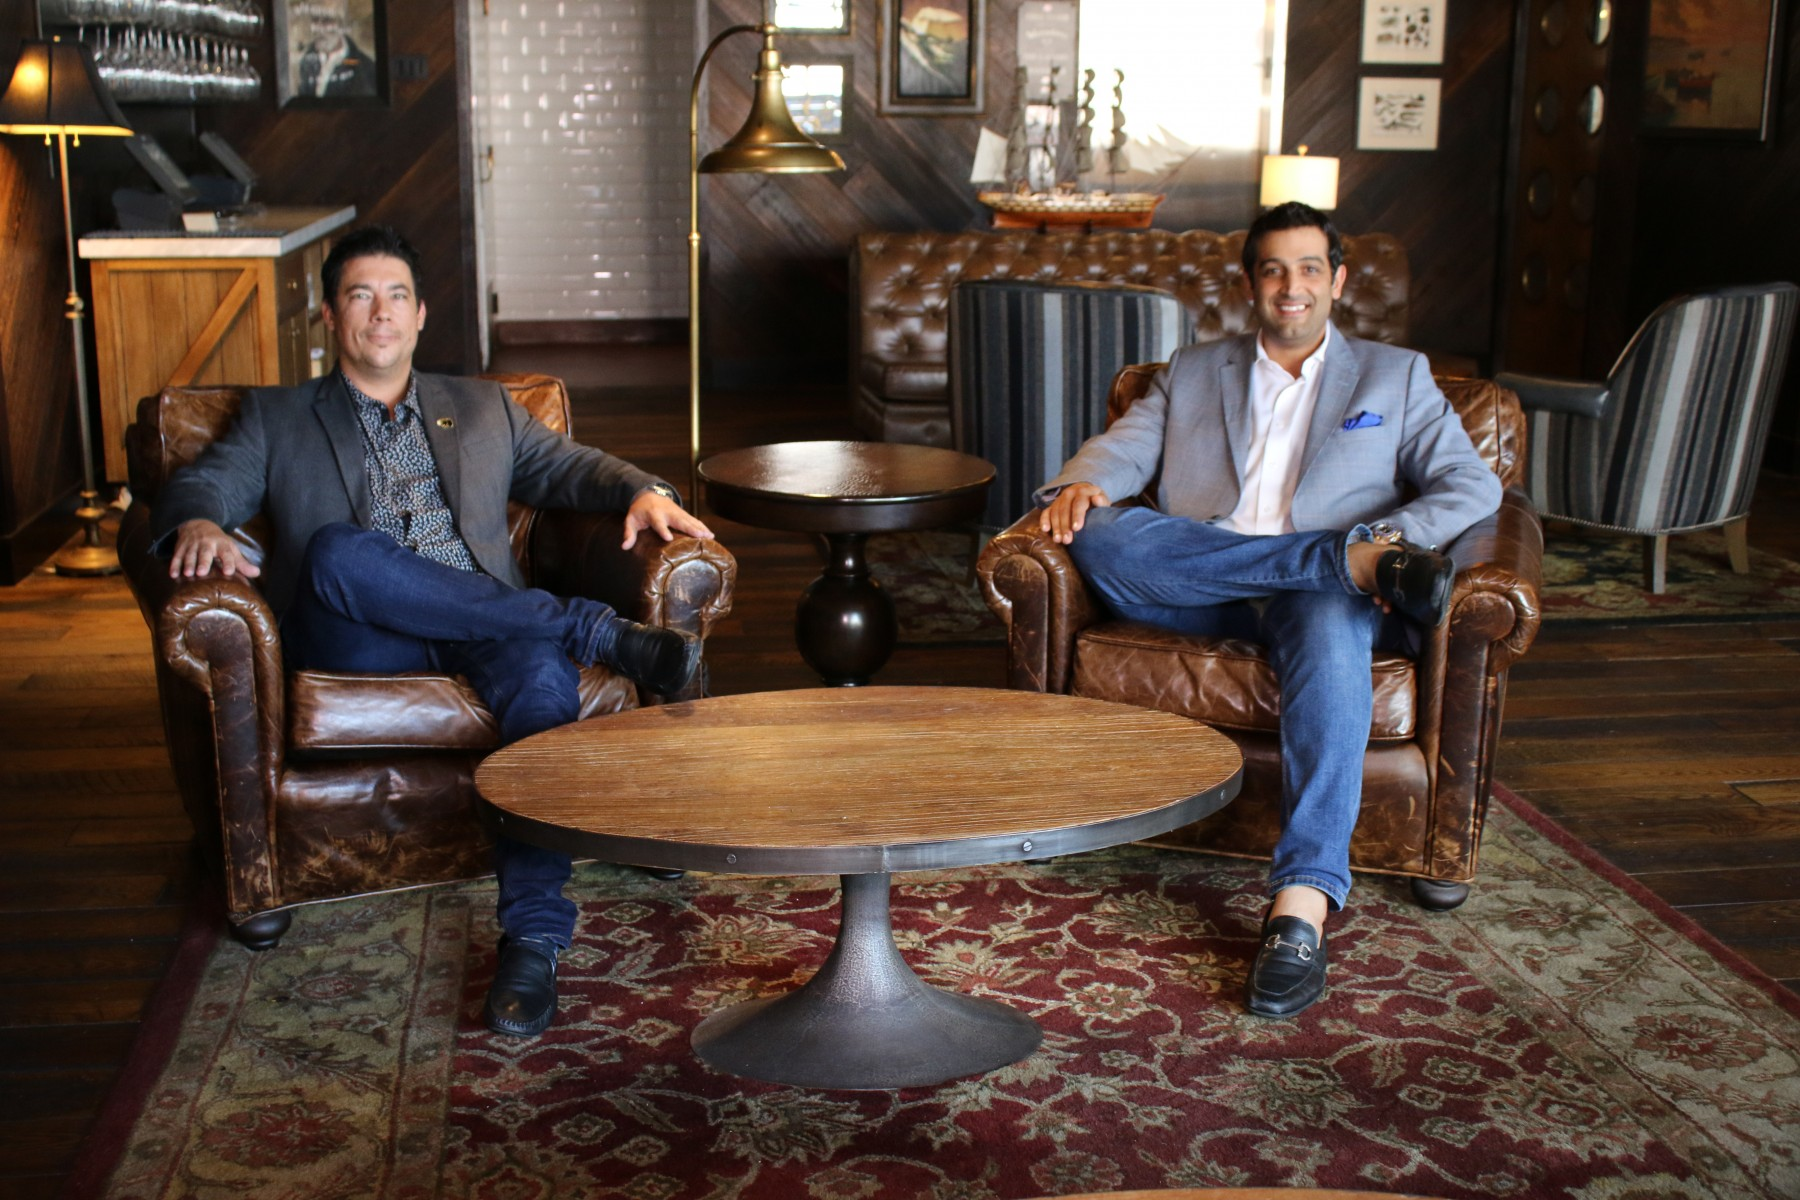 Former CSUSM students Oliver Graf and Sam Khorramian founded Big Block Realty, one of the fastest-growing independent real estate brokerages in the state.